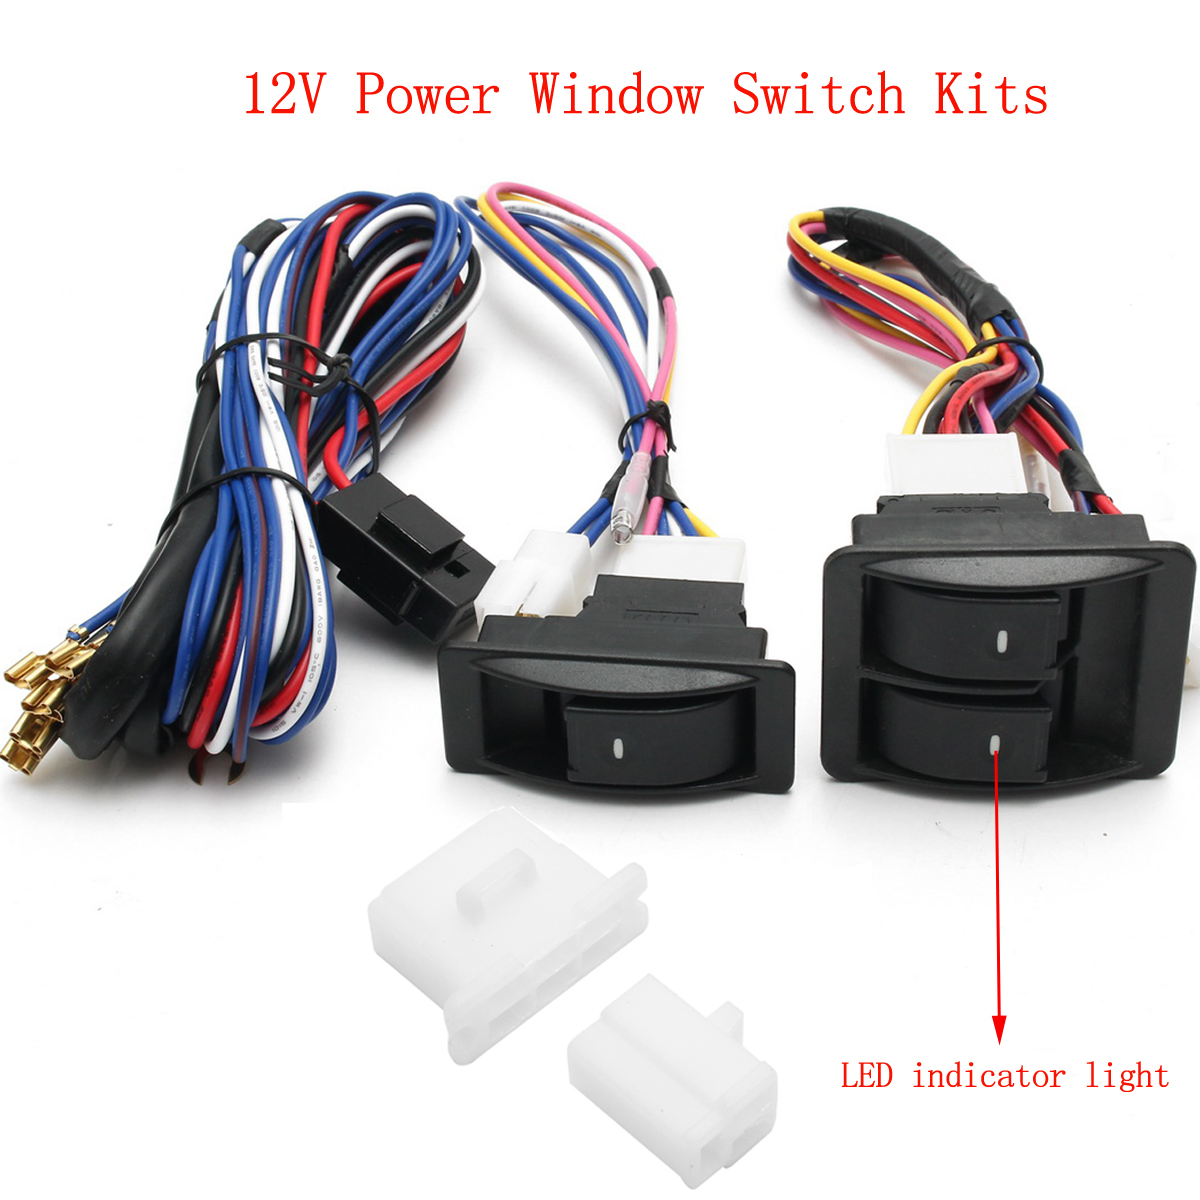 hight resolution of 6pcs 12v universal power window switch kits with wiring diagram power window switch power window switch wiring diagram